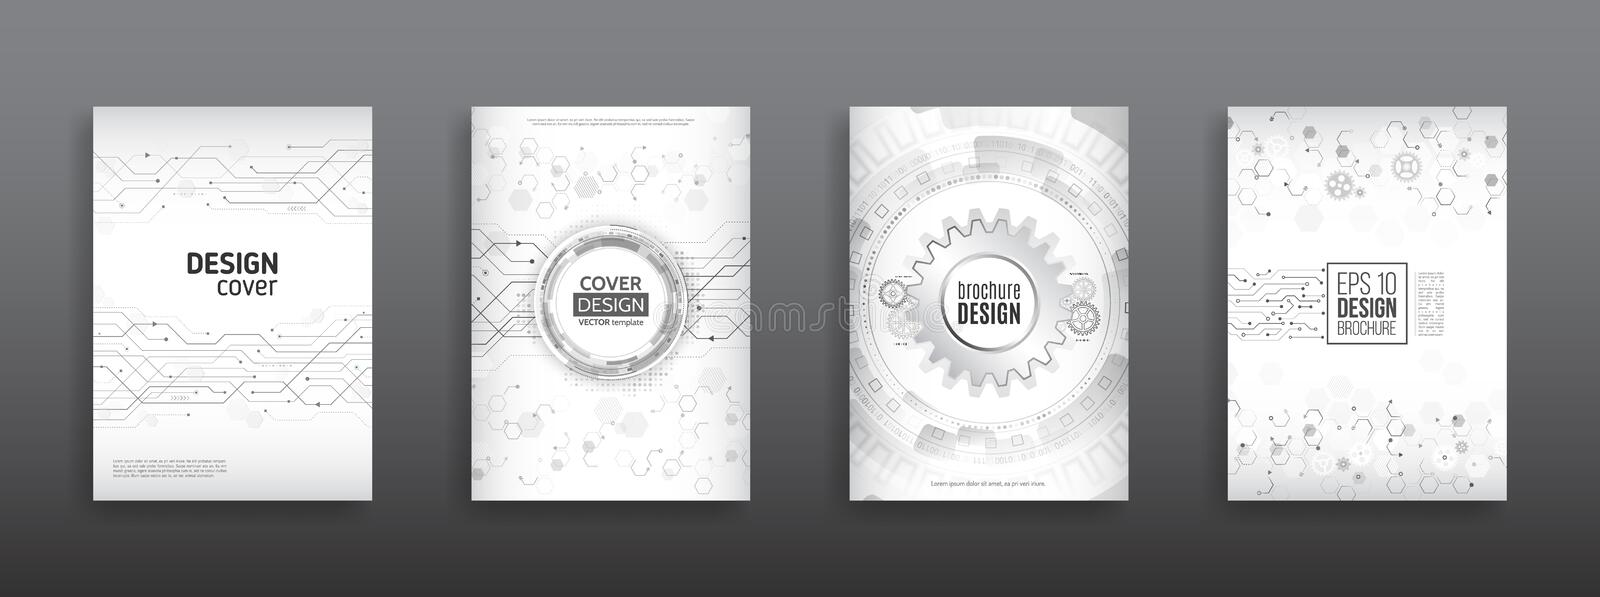 High Tech Cover Design Concept Stock Vector Illustration Of